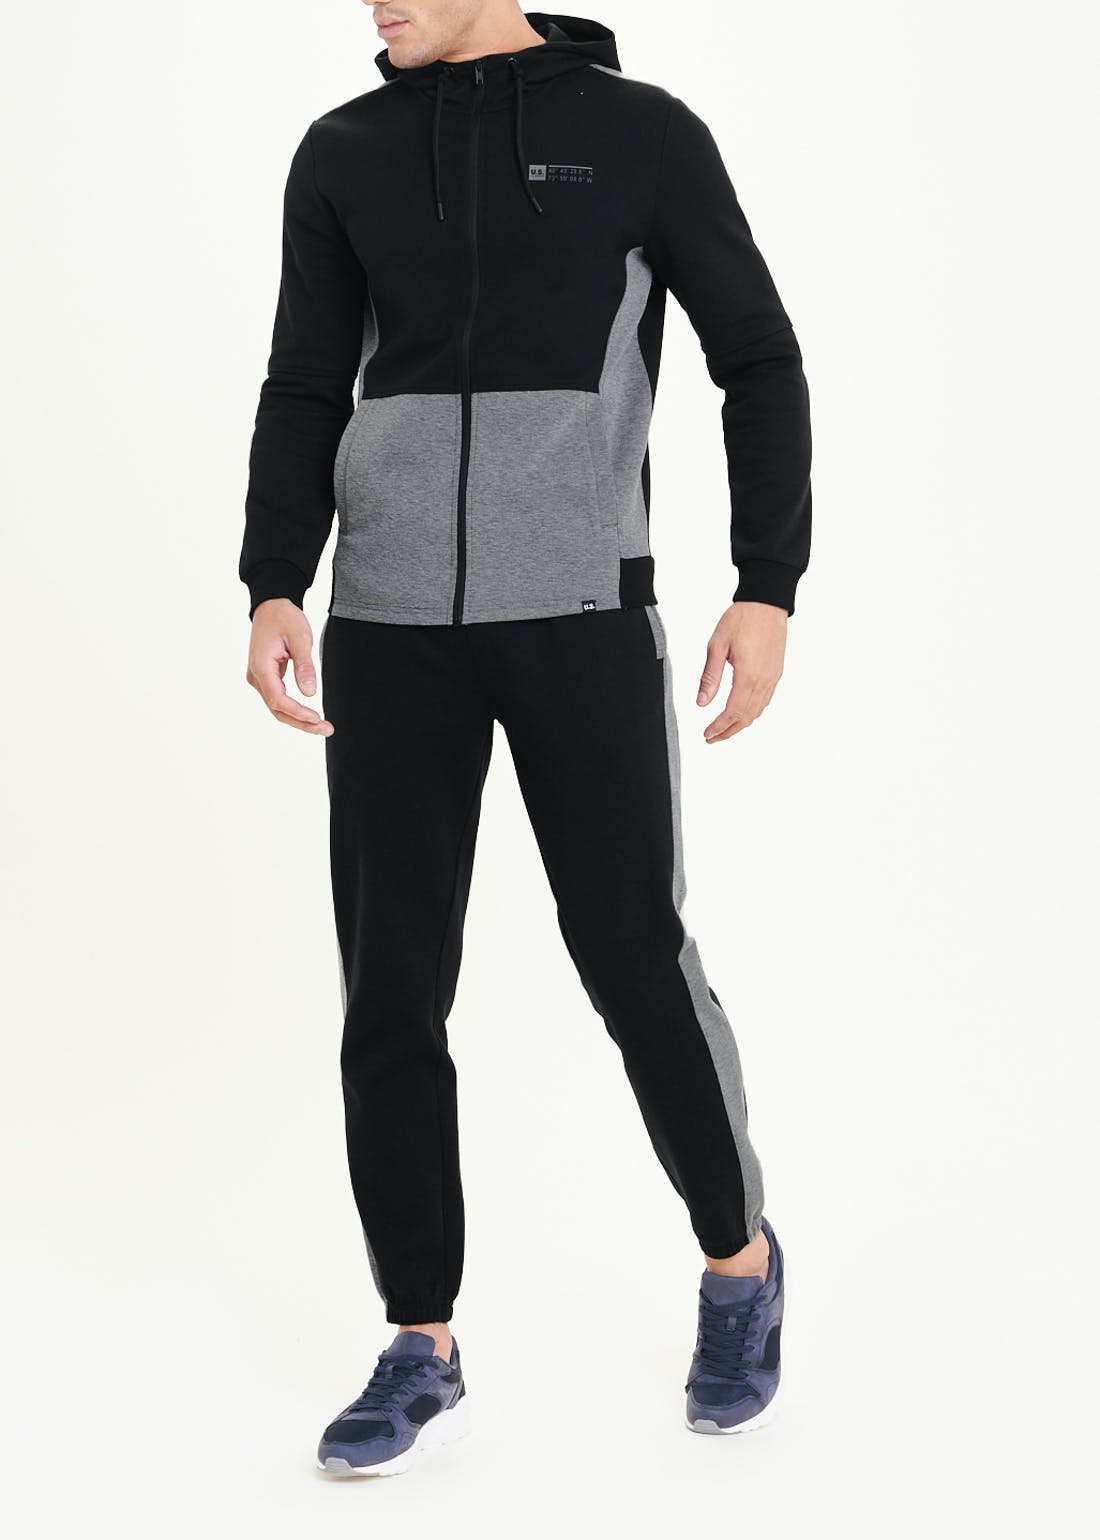 US Athletic Tracksuit Bottoms